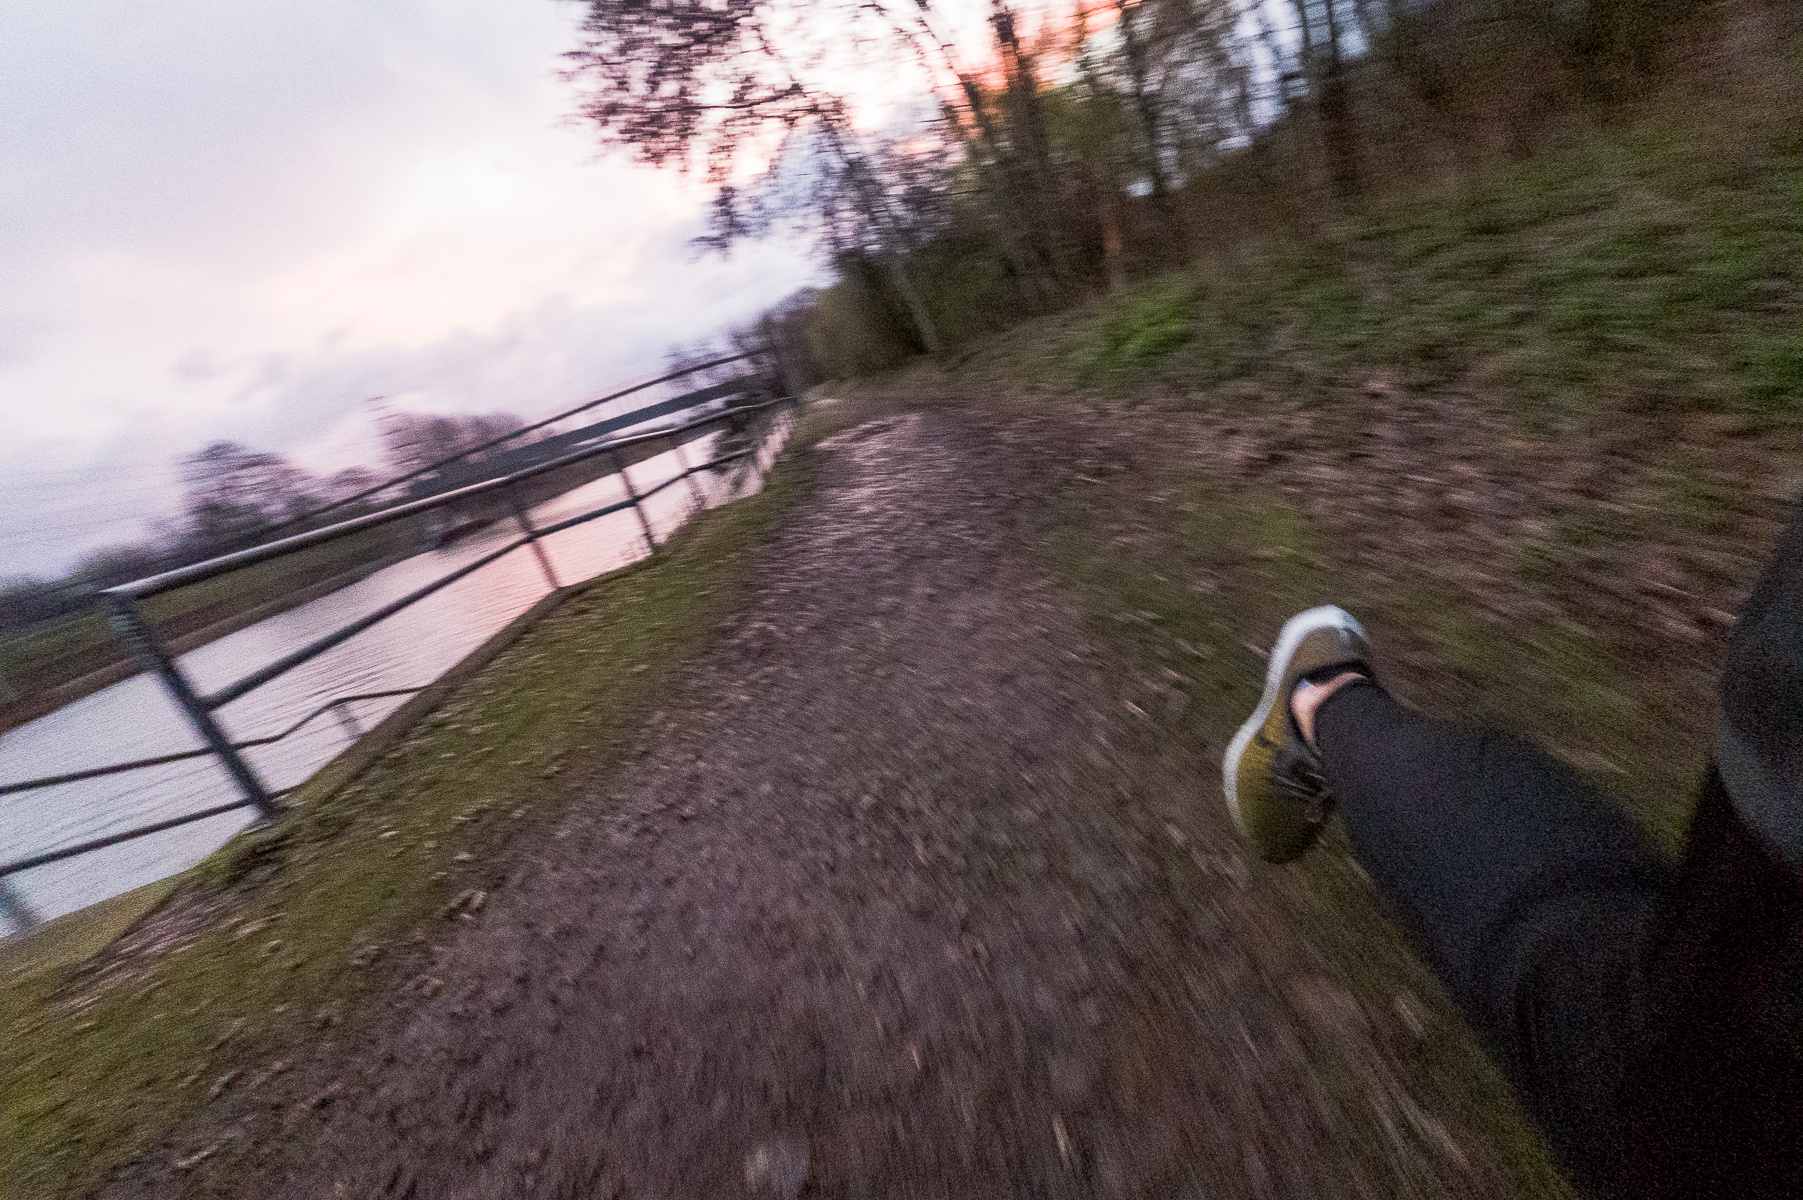 The Rhein-Herne canal in Oberhausen is a great spot for running (and other forms of recreation). Pictured here is a sunrise near the marina Oberhausen. Germany, March 13, 2020.